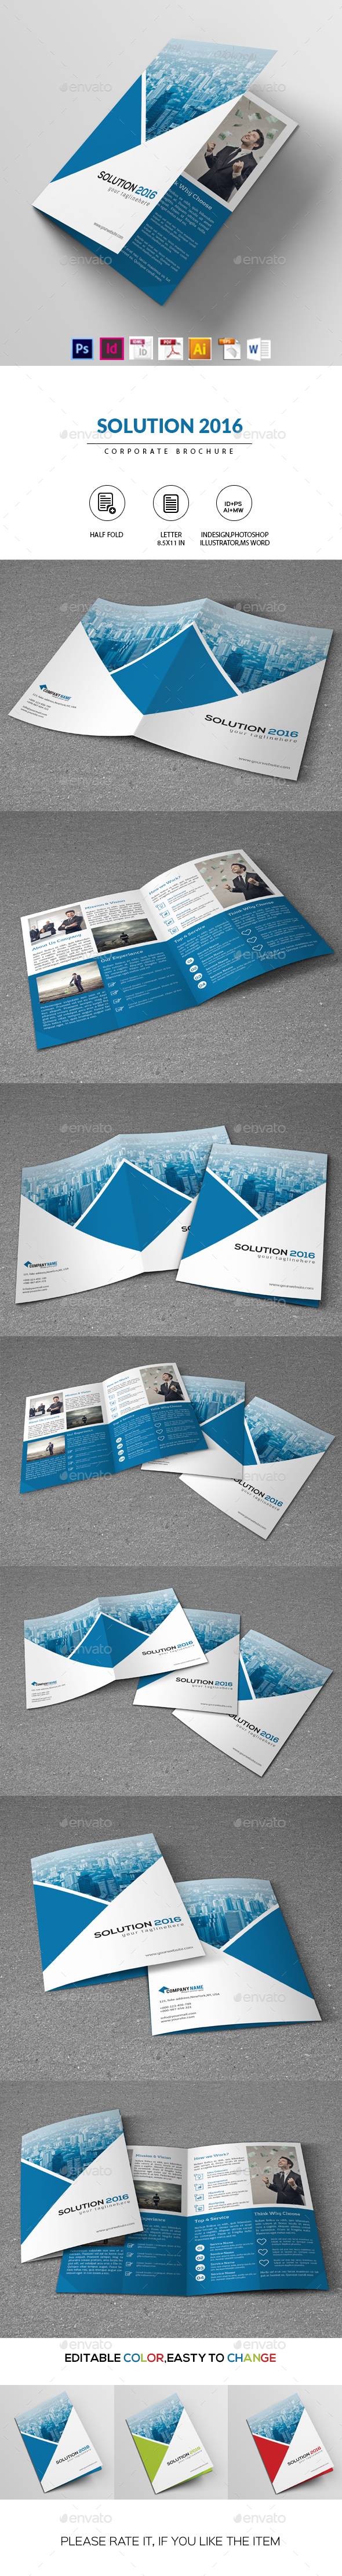 Business Solution 2016 | Corporate Brochure - Corporate Brochures